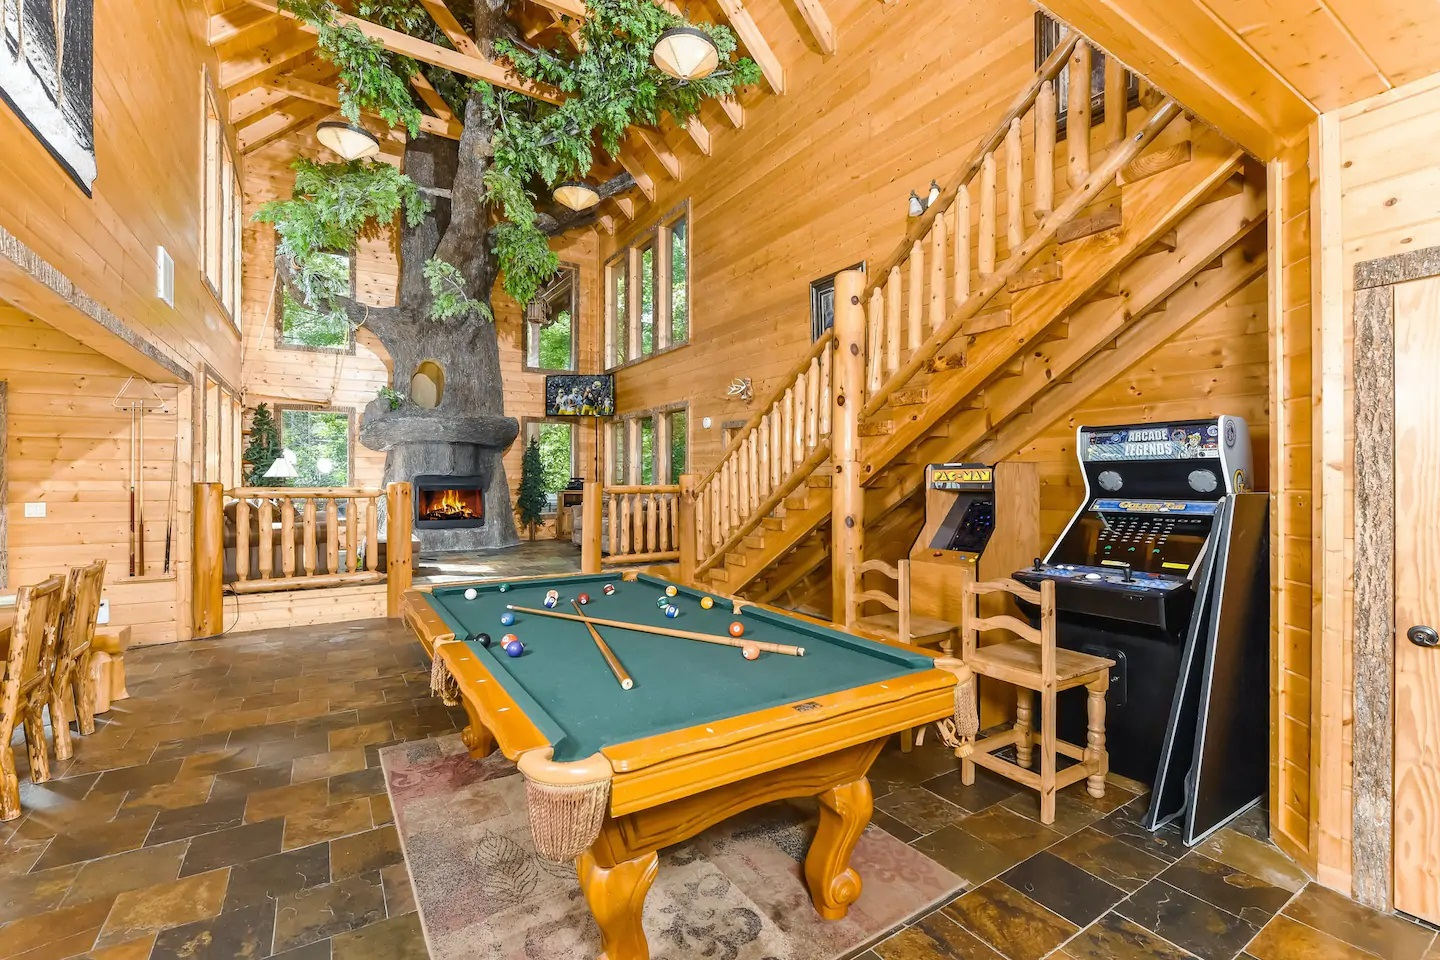 Photo of the interior of a luxury cabin in Sevierville, Tennessee.